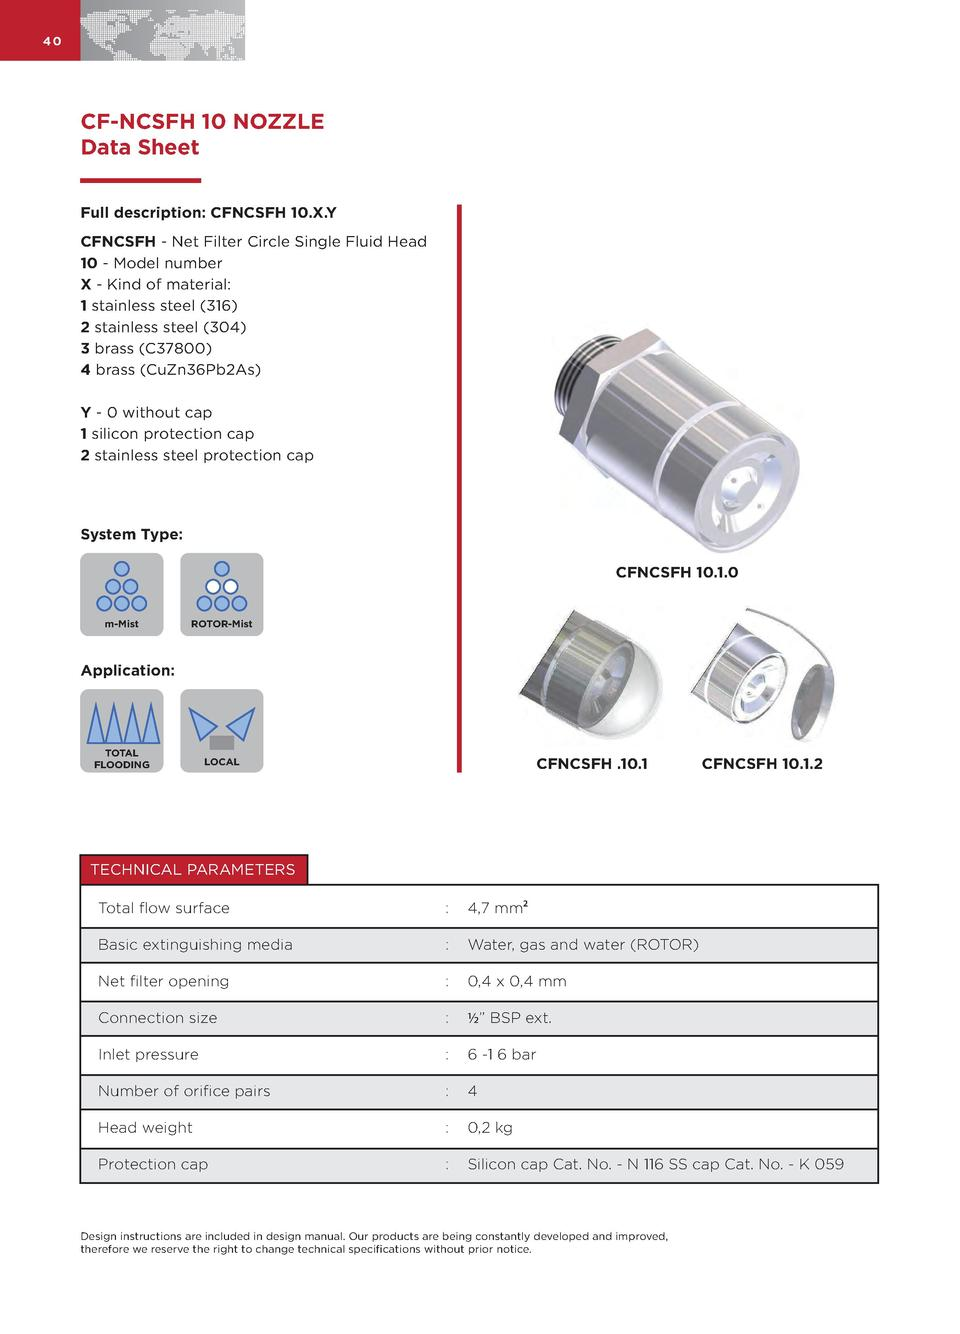 40  CF-NCSFH 10 NOZZLE Data Sheet Full description  CFNCSFH 10.X.Y CFNCSFH - Net Filter Circle Single Fluid Head 10 - Mode...